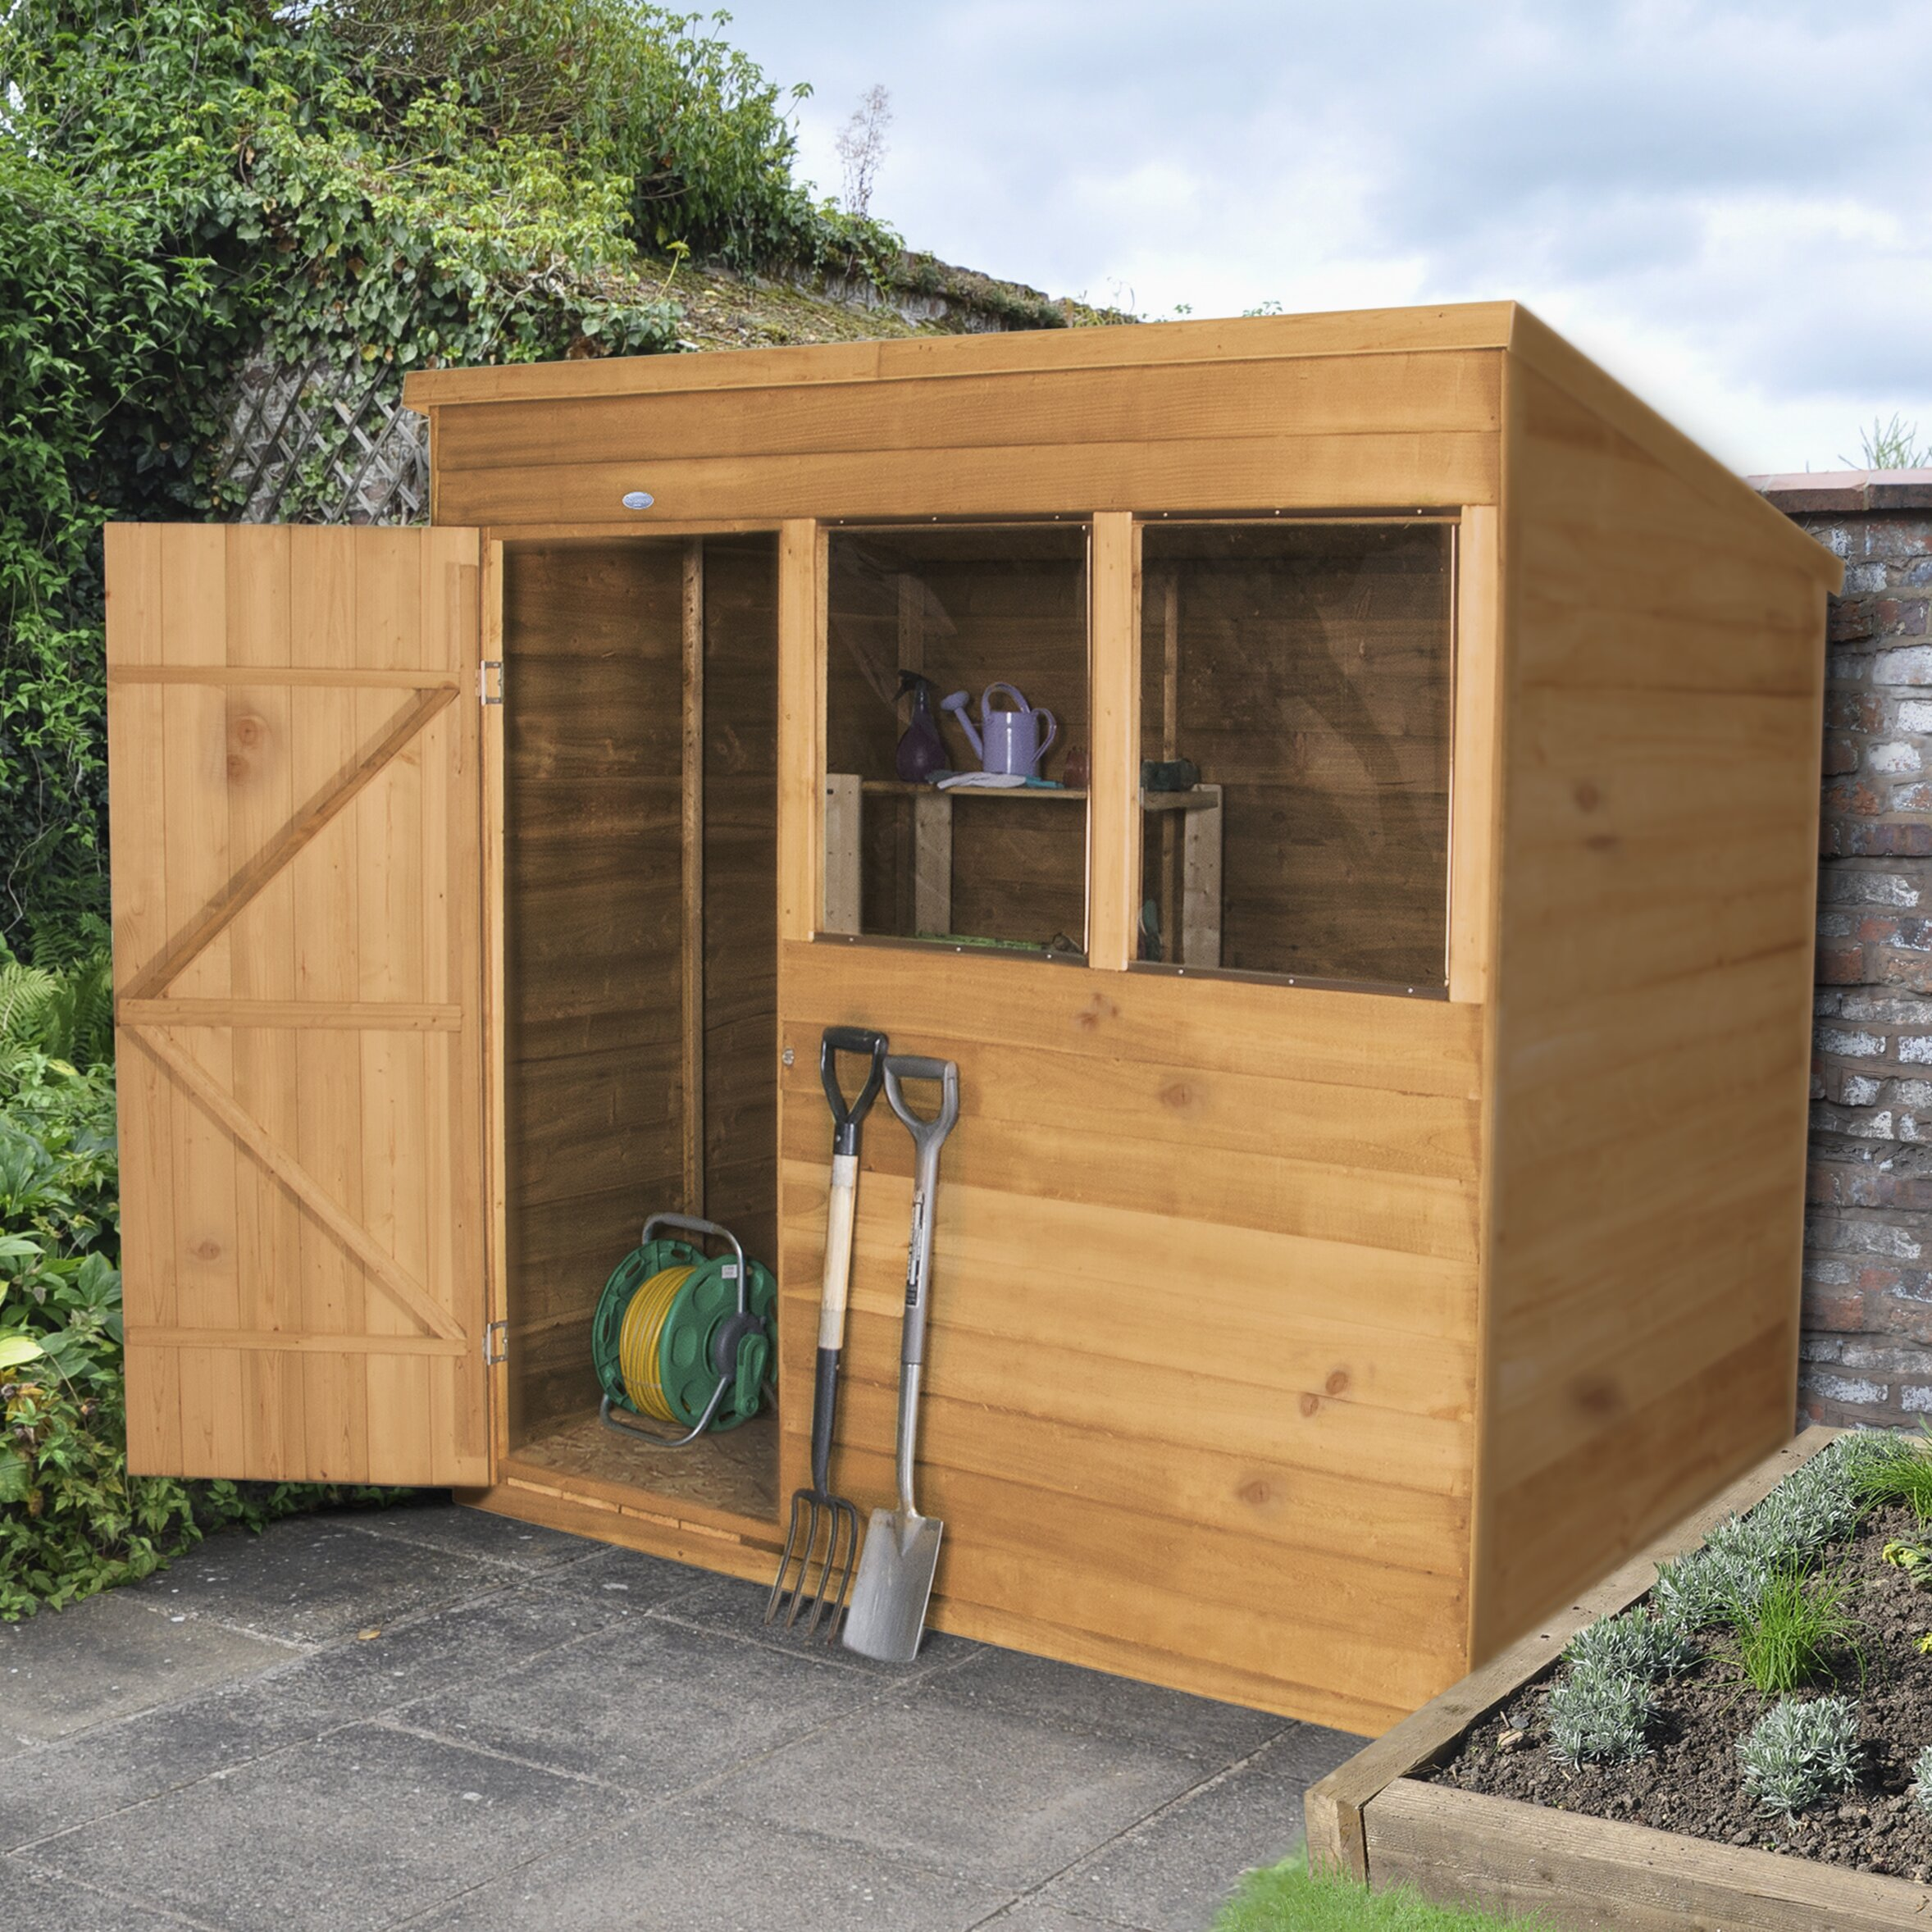 Forest garden 7 x 5 wooden storage shed reviews for Garden shed 7 x 5